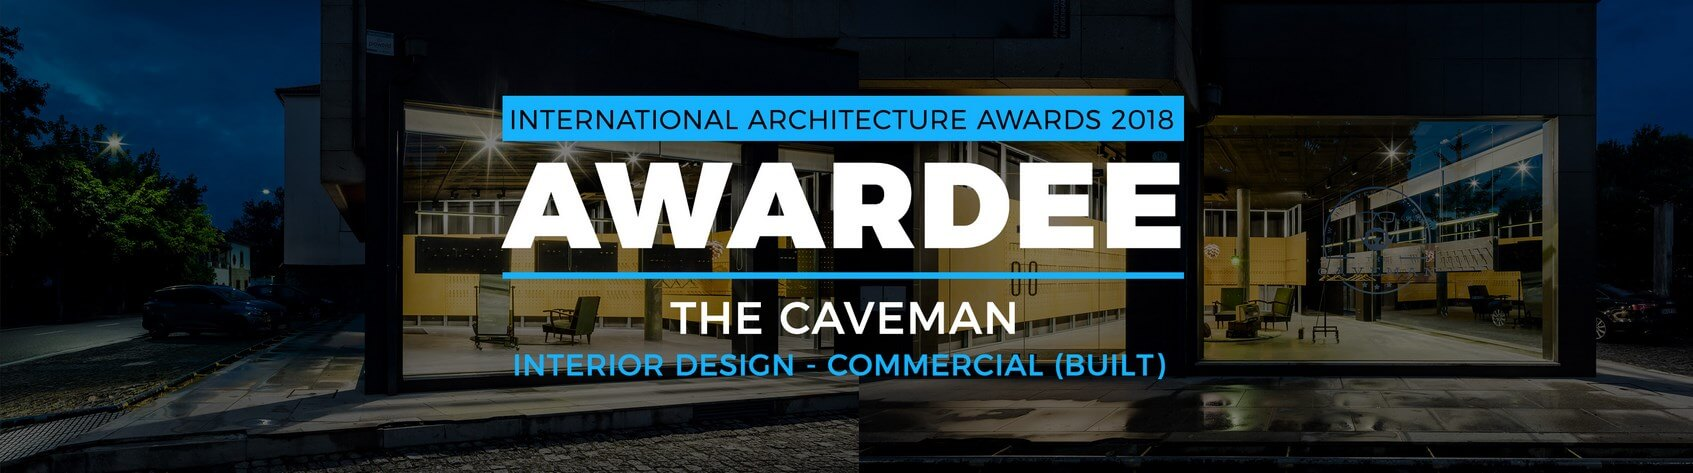 """The Caveman"" de Tiago do Vale Arquitectos distinguido com 3º prémio nos International Architecture Awards"